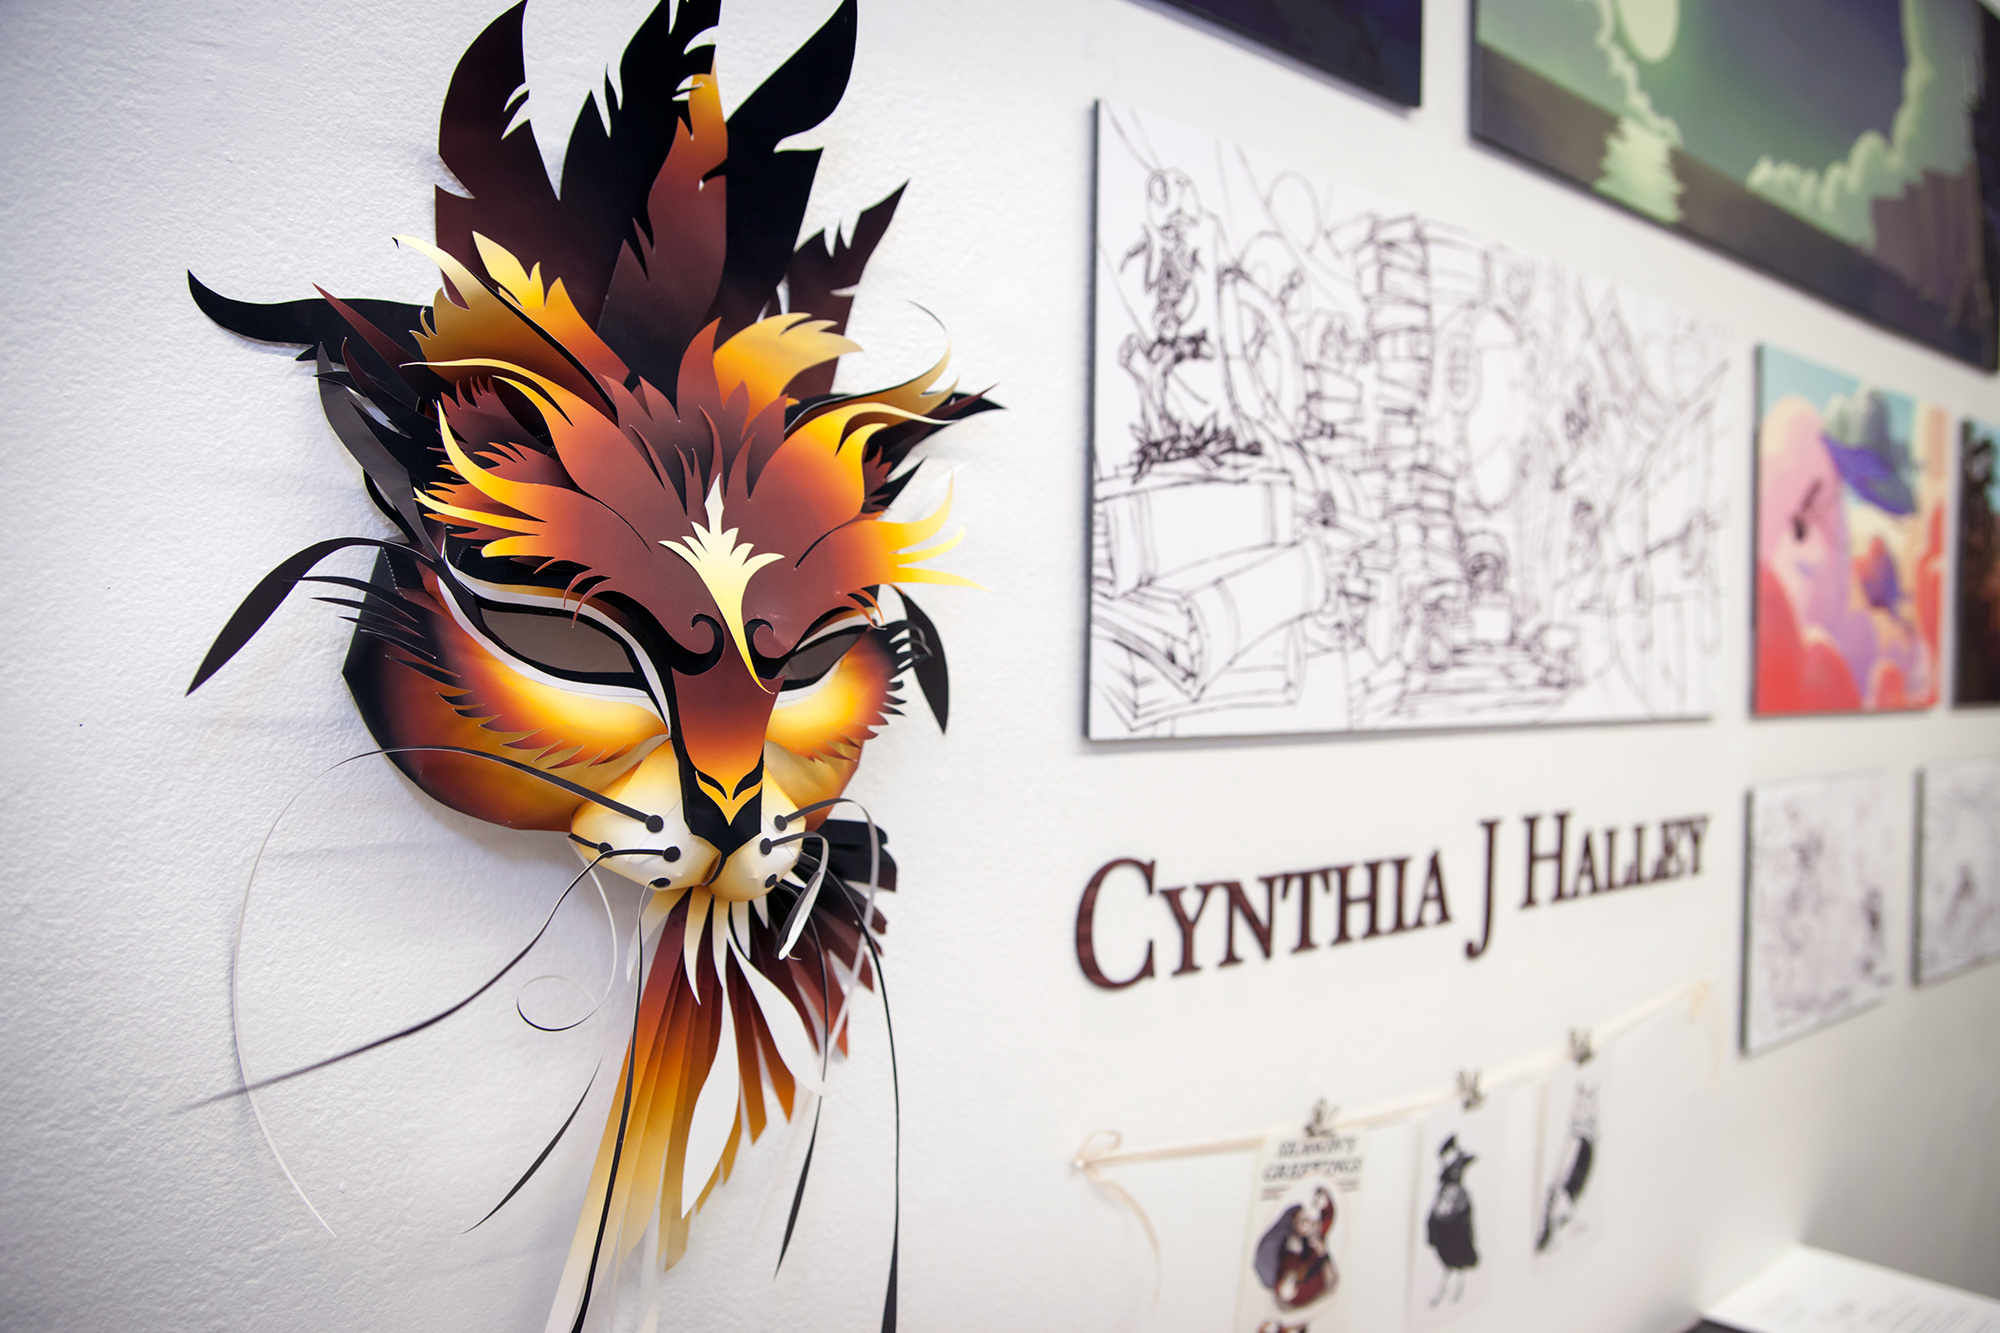 Cynthia J. Halley's cat mask